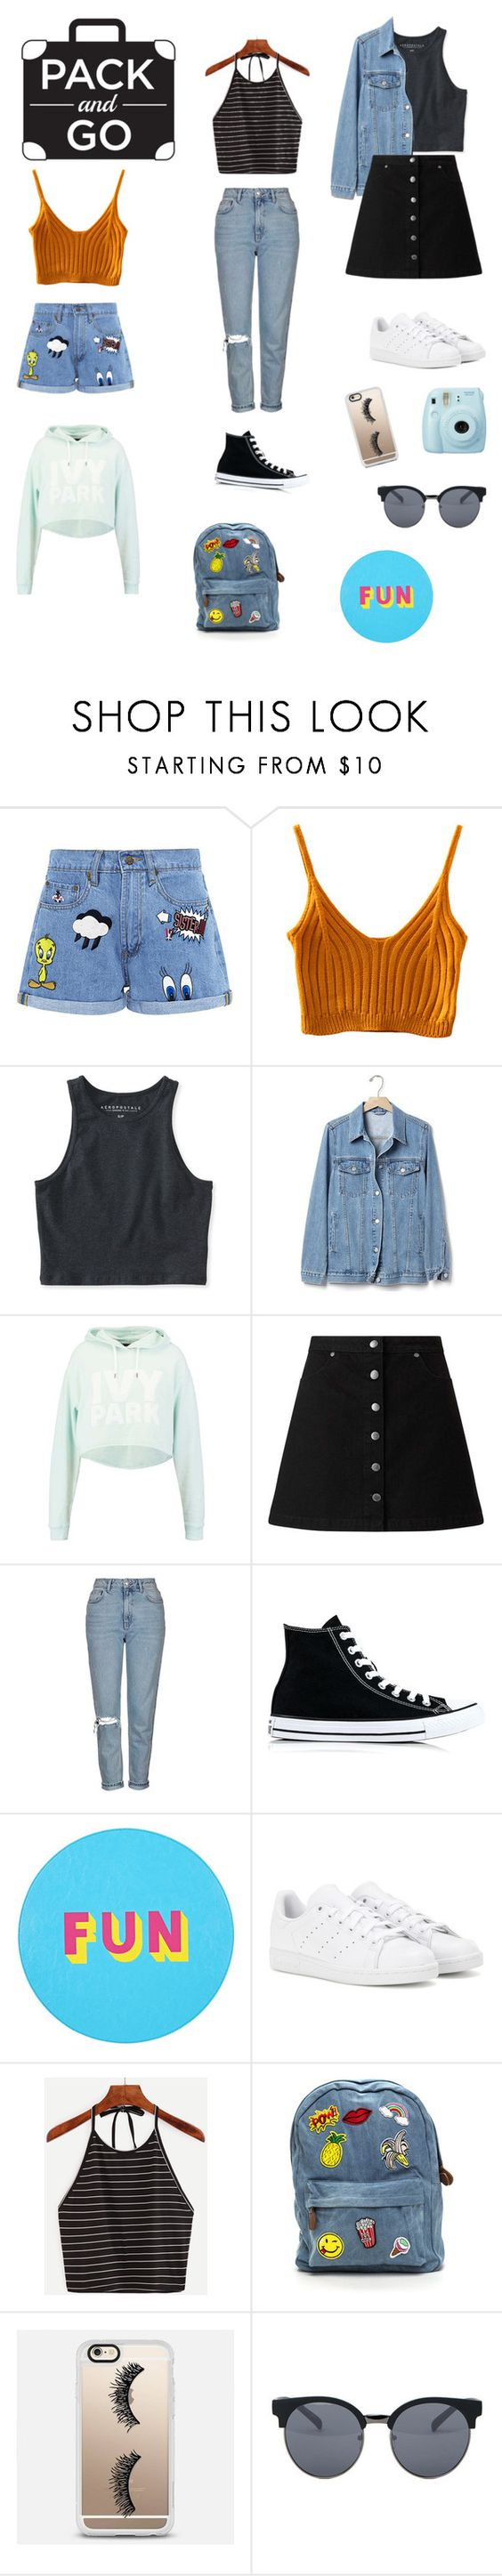 """#packandgo"" by lelarzgon ❤ liked on Polyvore featuring Paul & Joe Sister, Aéropostale, Gap, Ivy Park, Miss Selfridge, Topshop, Converse, Lisa Perry, adidas and Casetify"